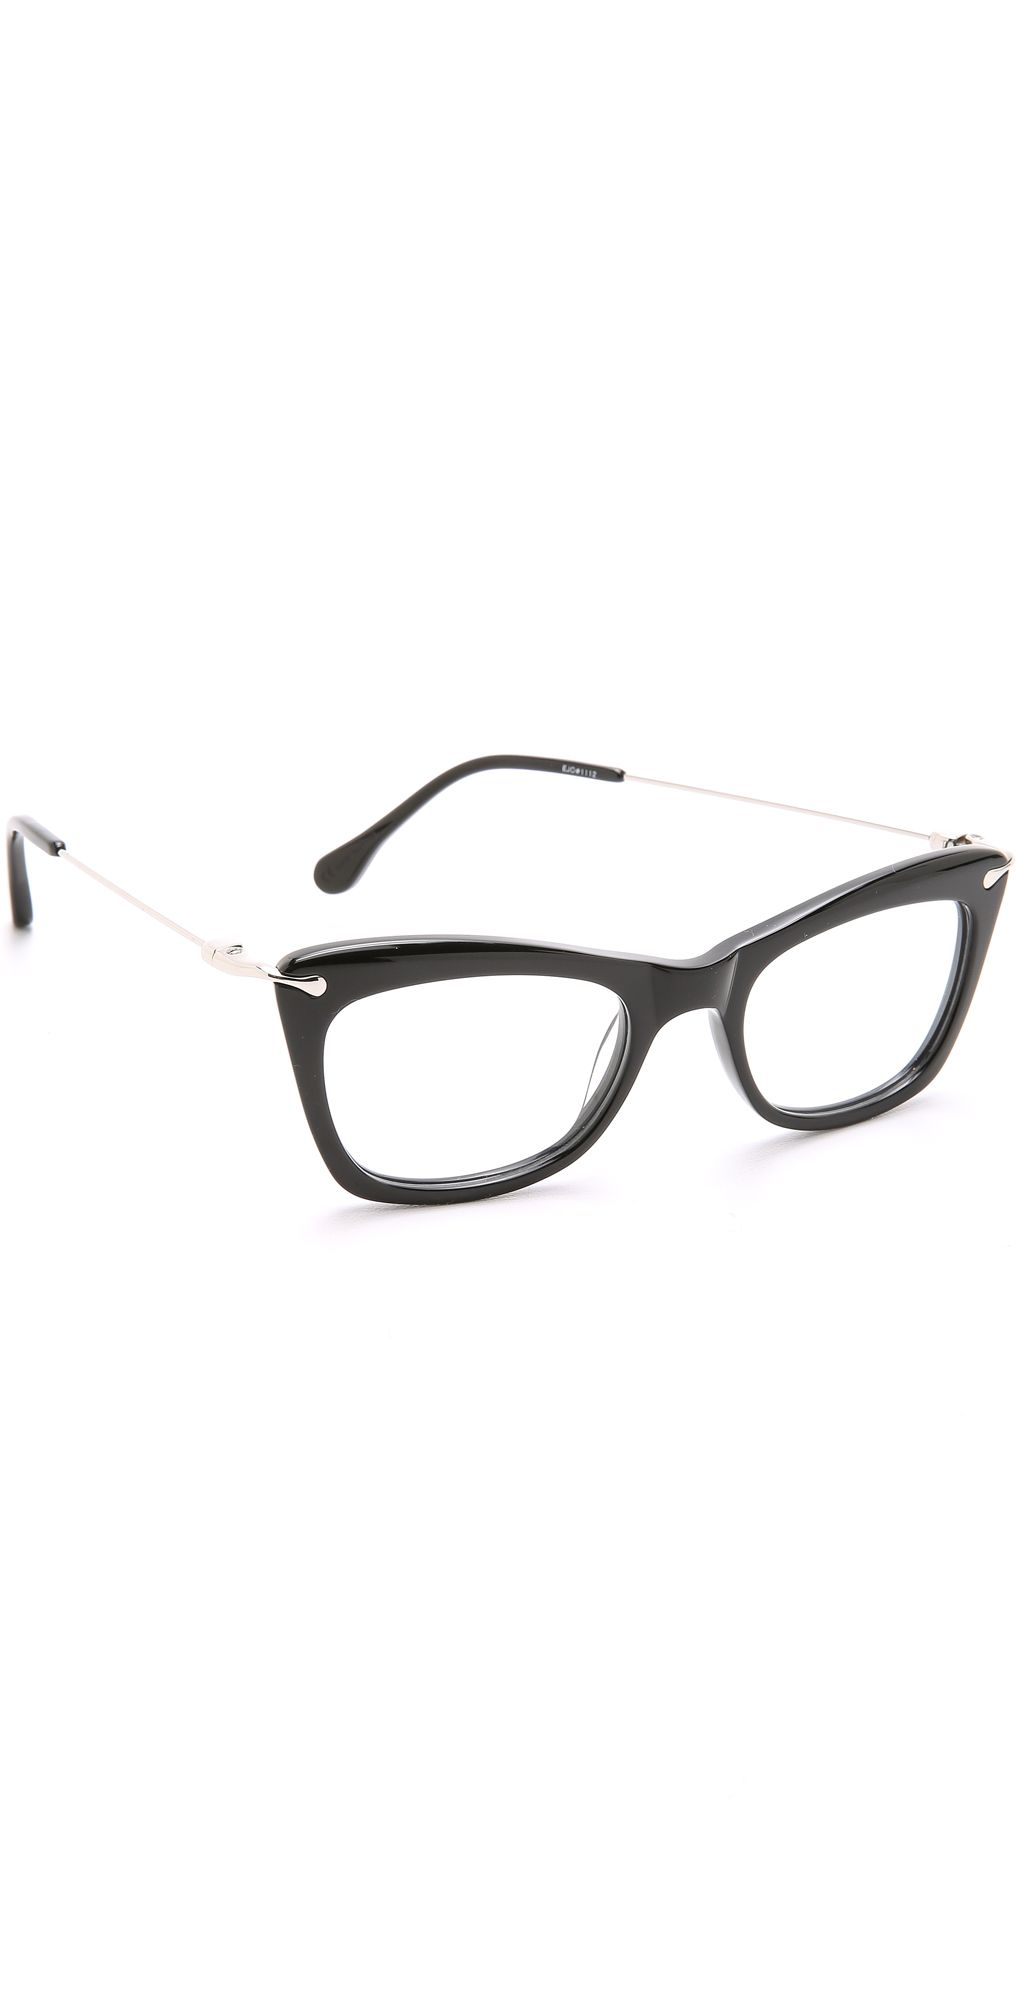 Chrystie Glasses | Eyewear. Glasses. Shades. Contacts. | Pinterest ...